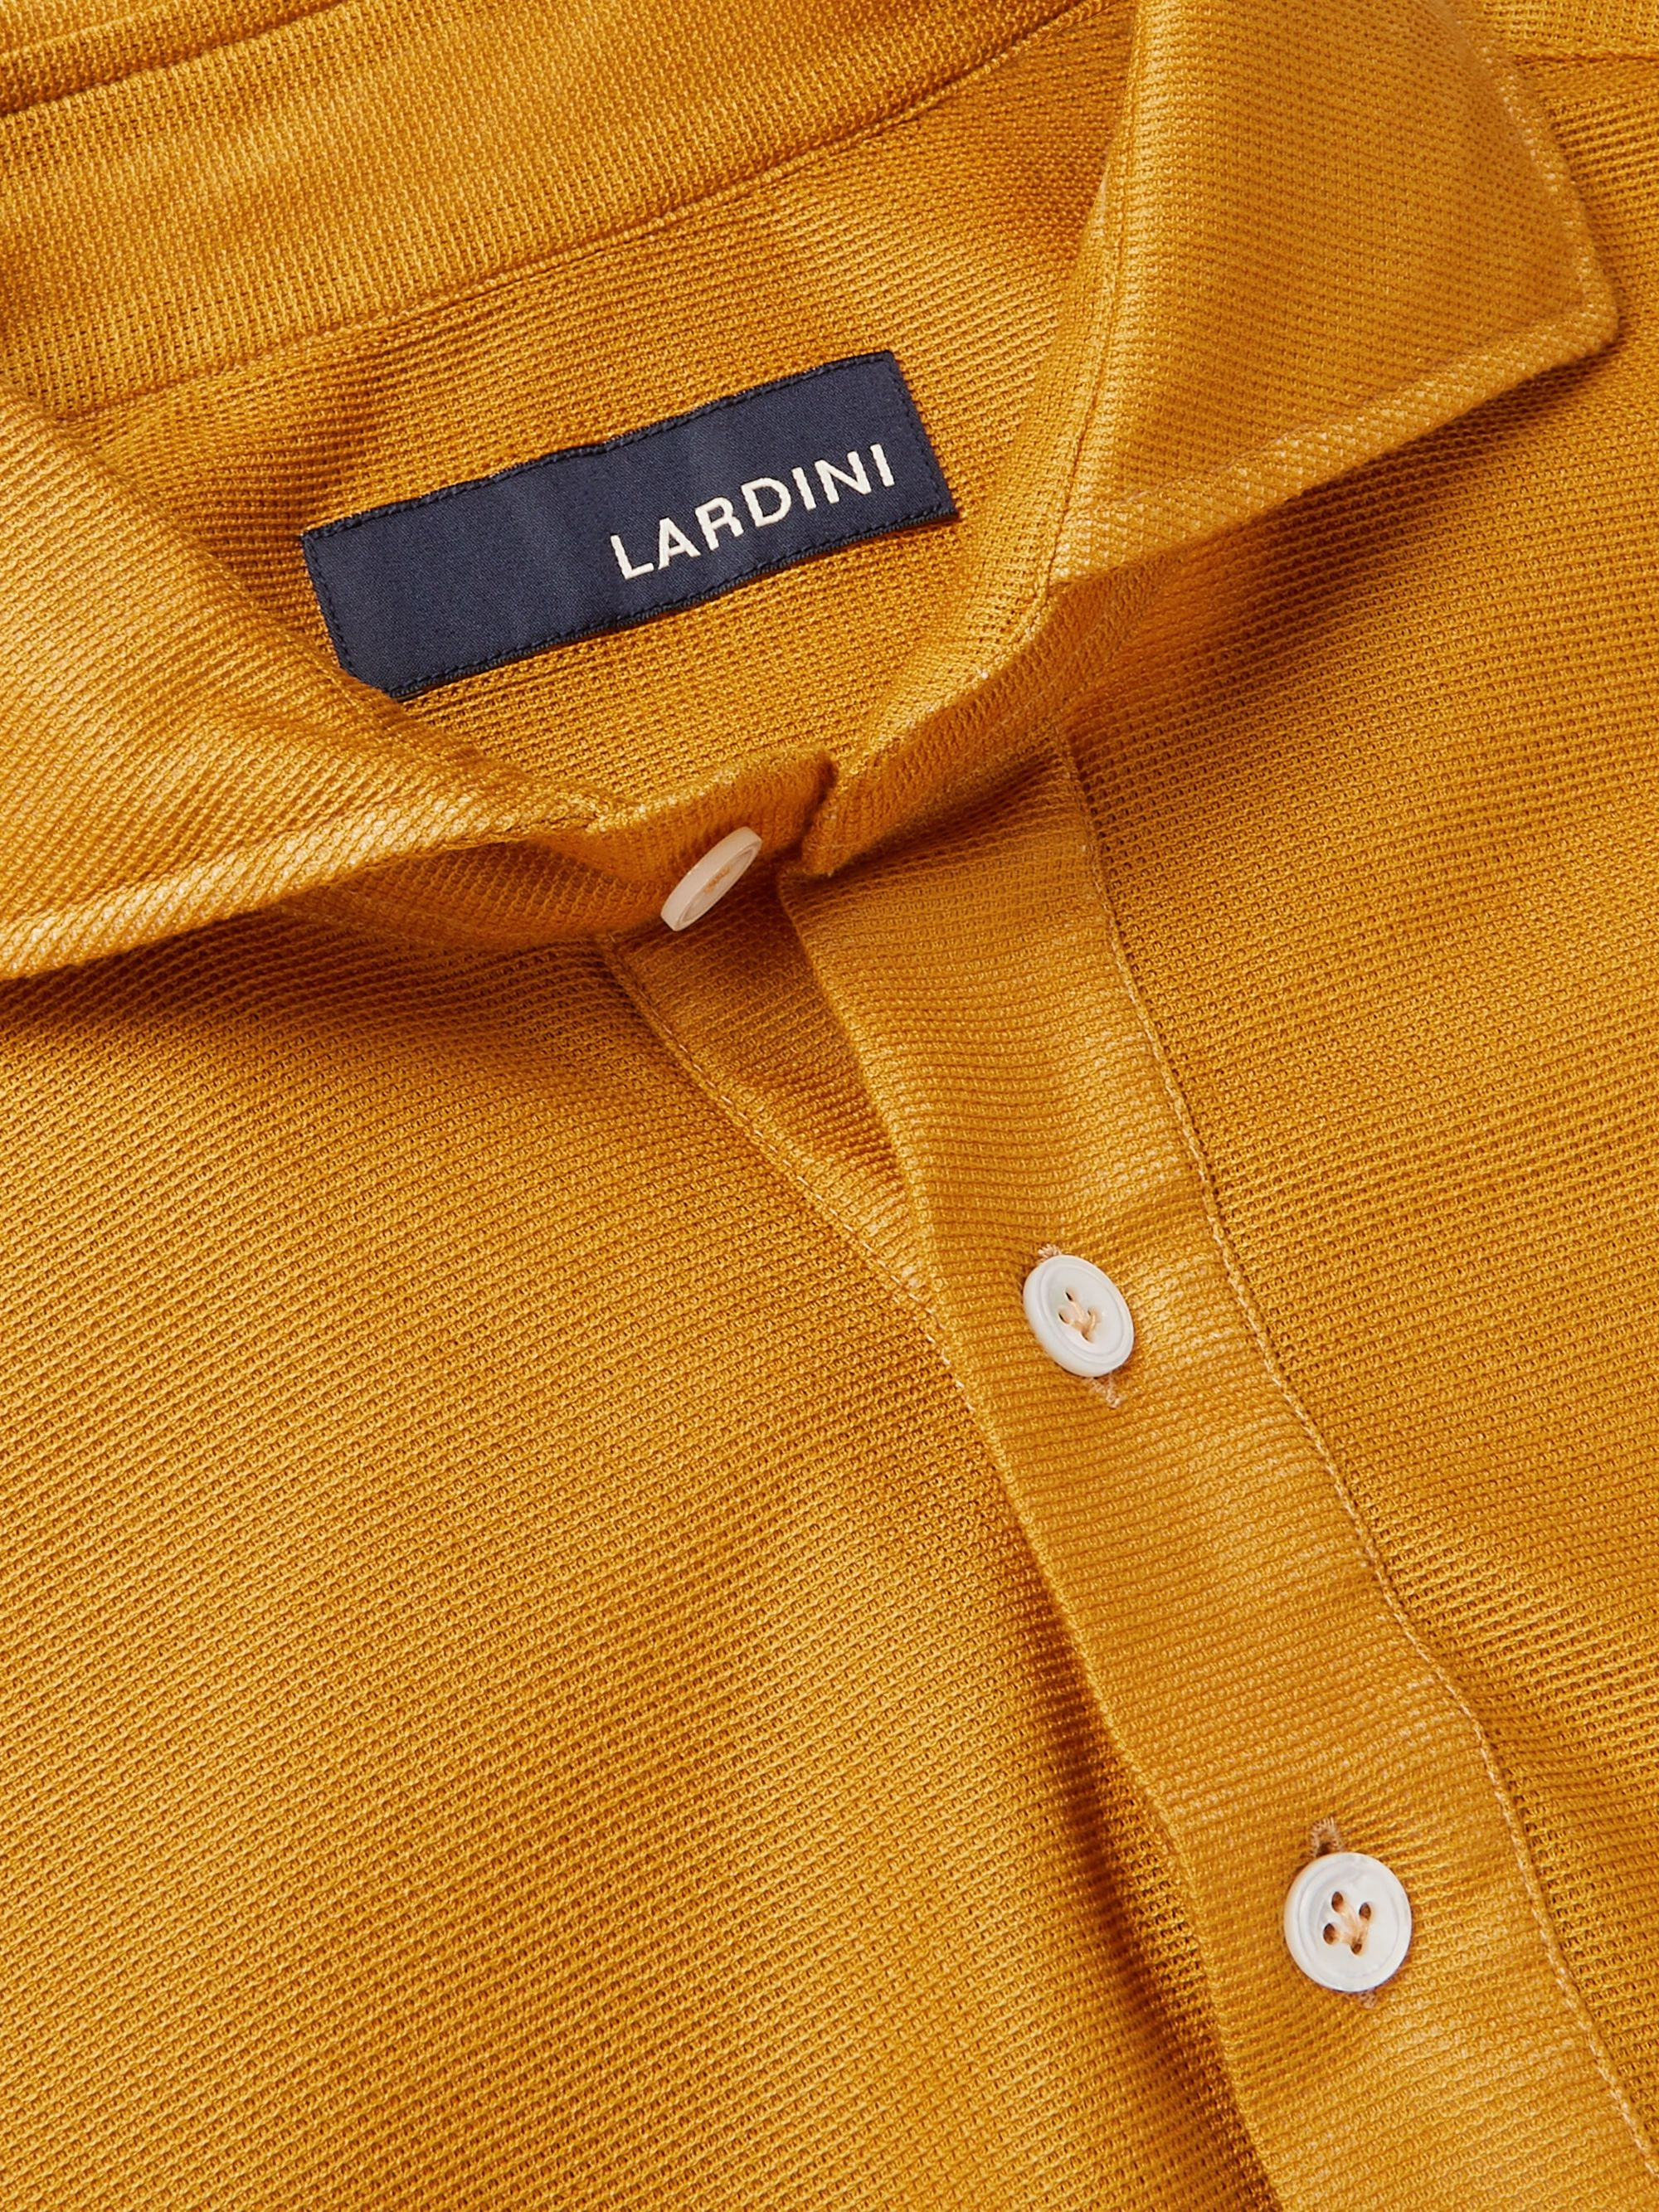 LARDINI Elandry Cotton Half-Placket Shirt